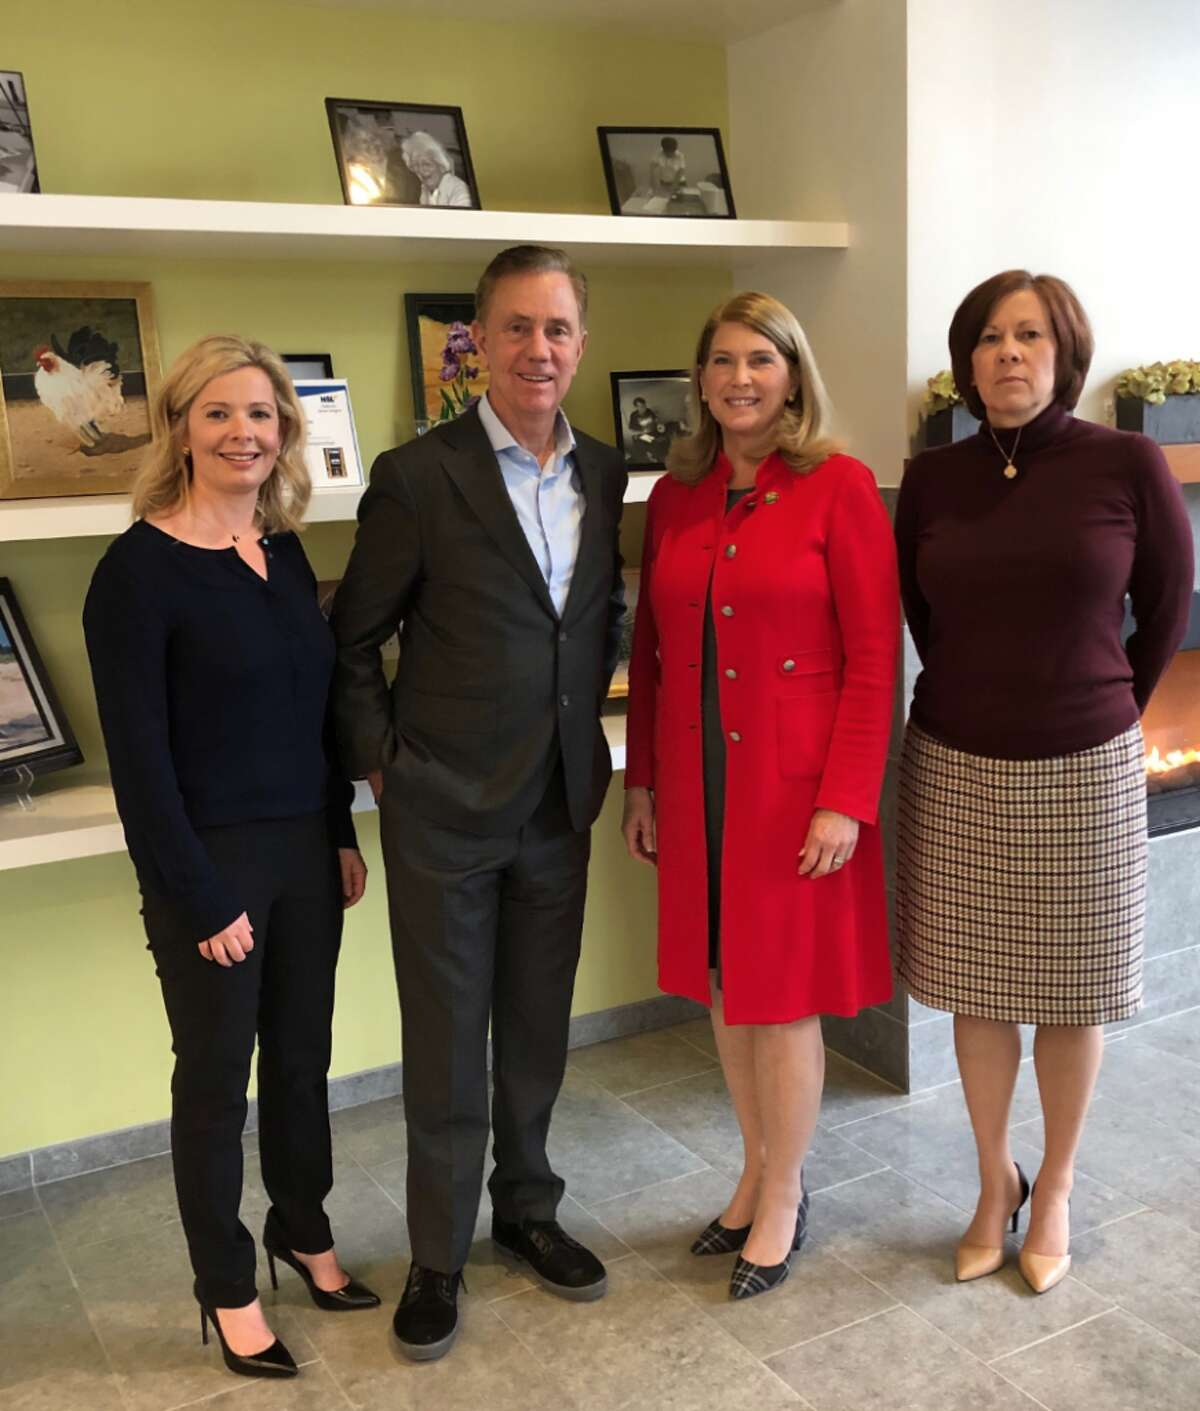 Governor Ned Lamont visited Darien Monday and met with Board of Ed Chairman Tara Ochman, left, First Selectman Jayme Stevenson, and Town Administrator Kate Clarke Buch.